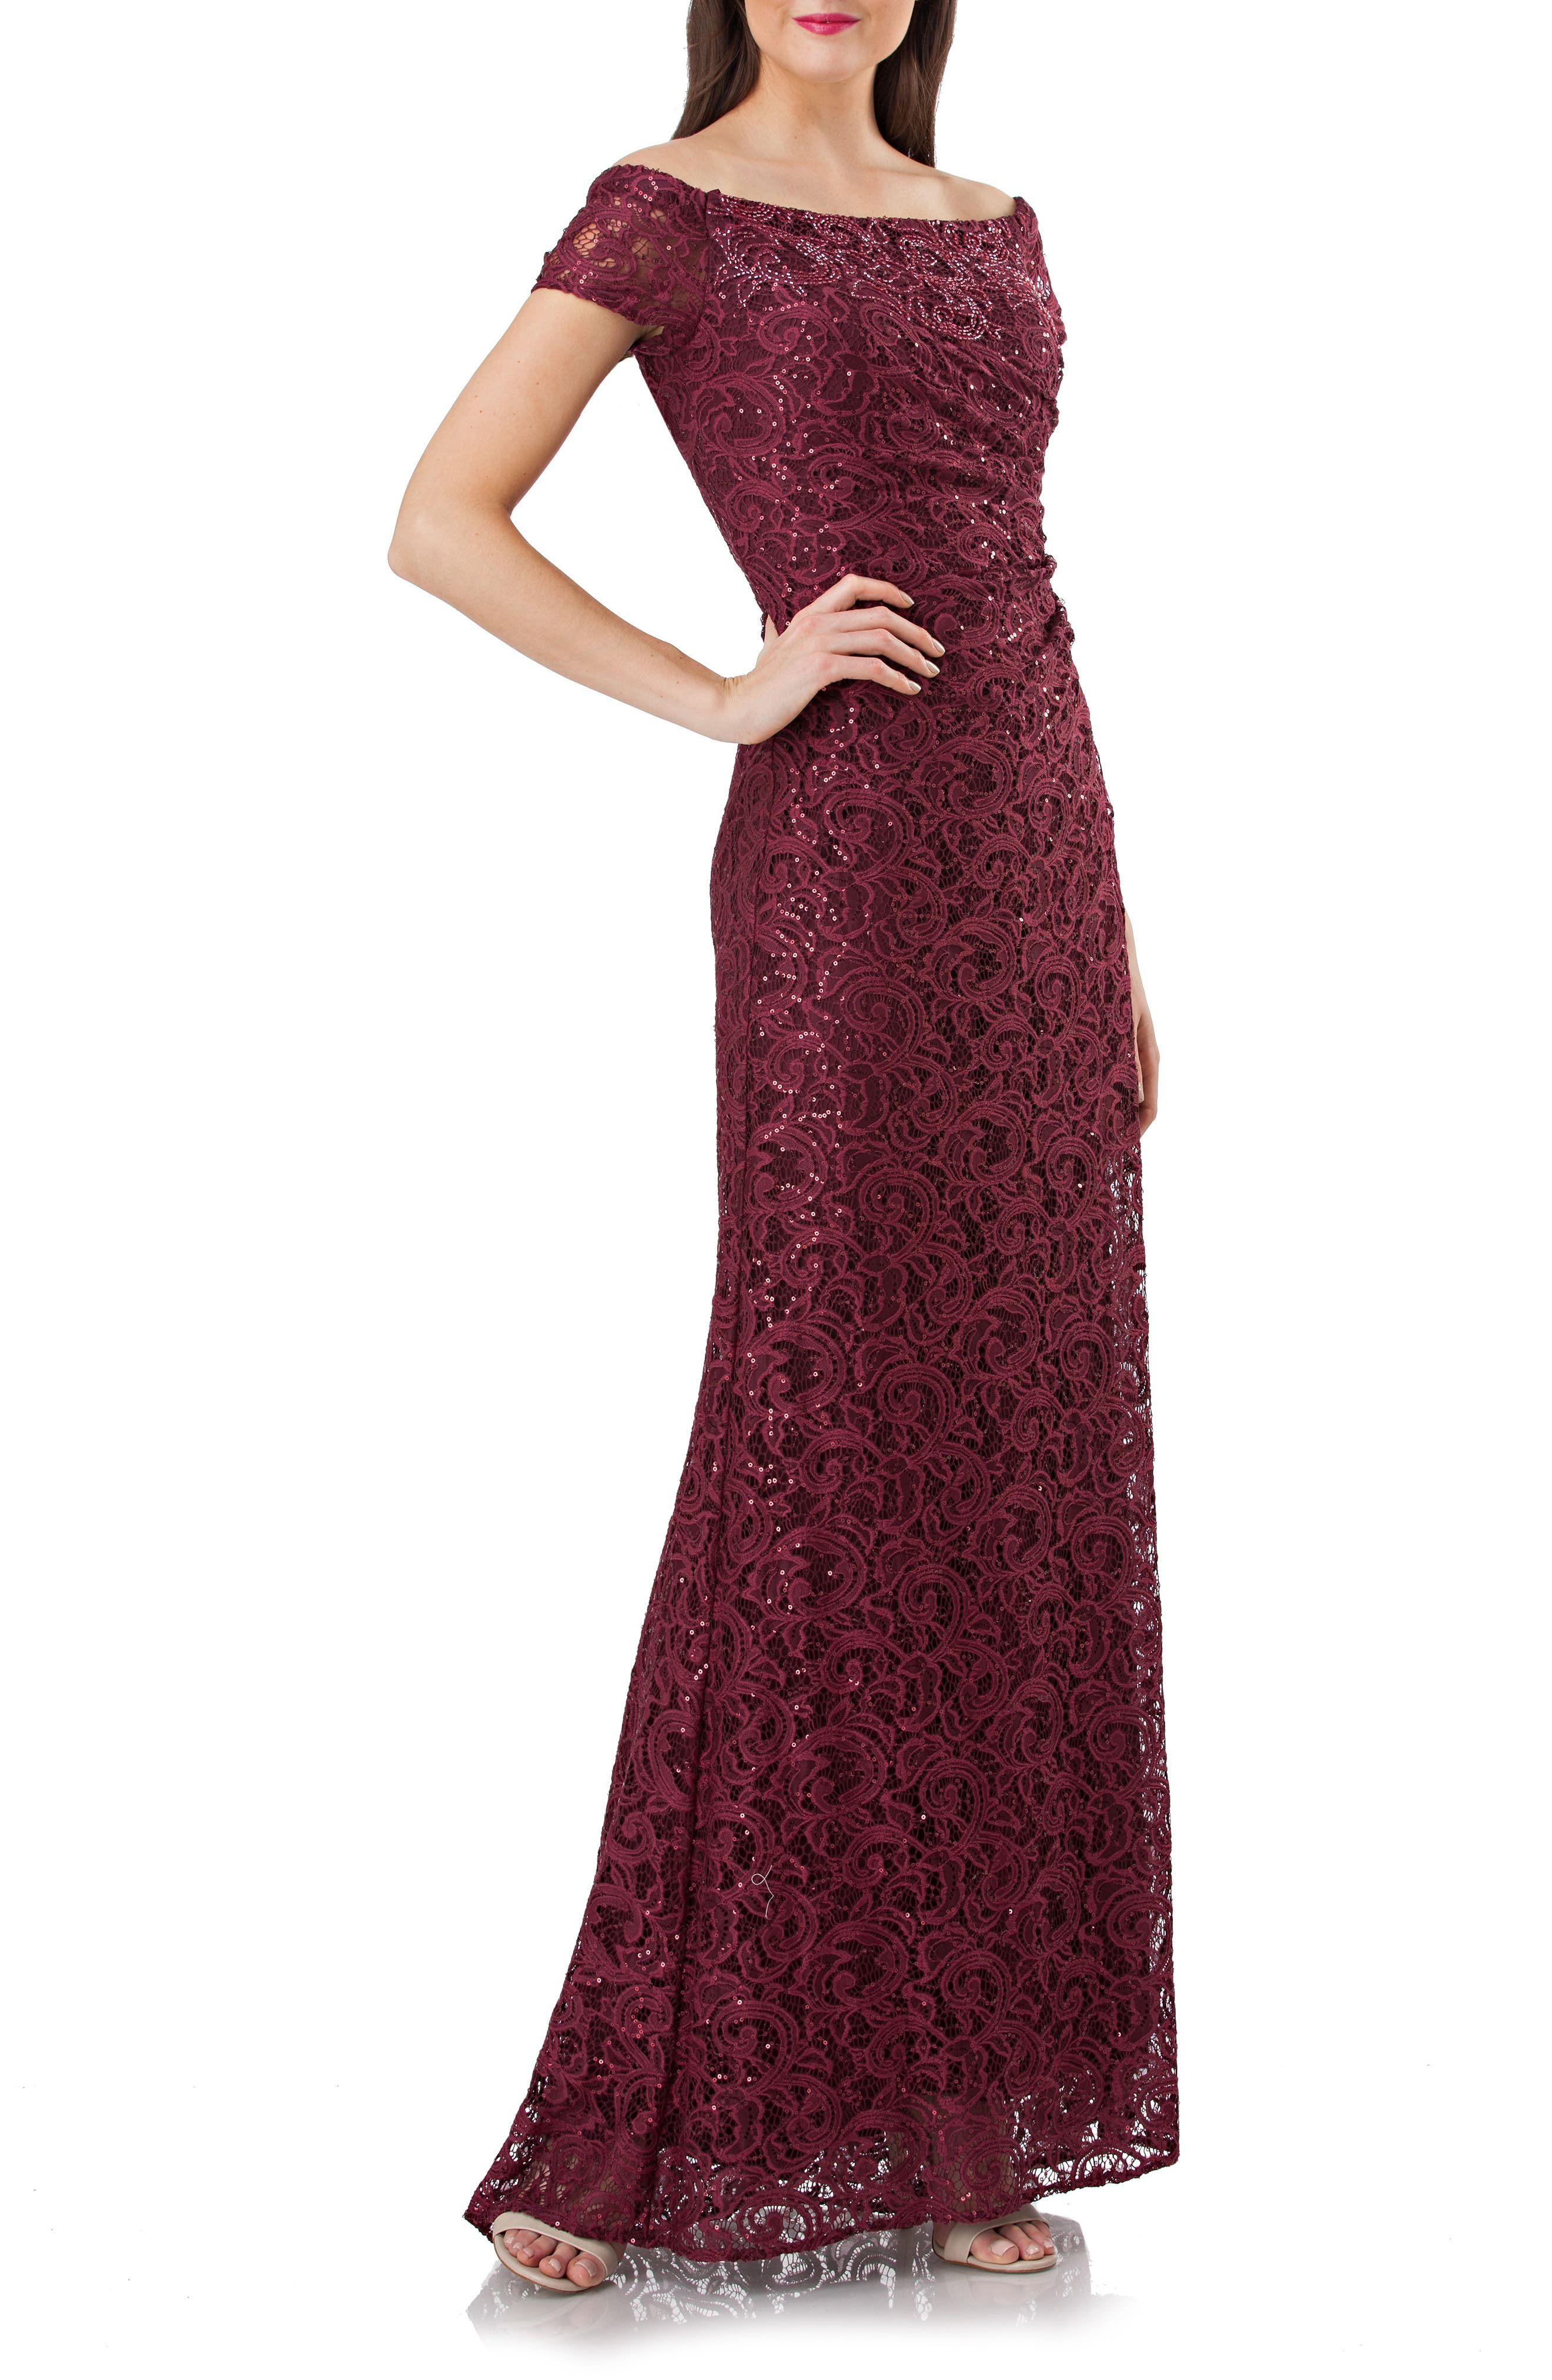 Sequin Lace Off the Shoulder Mermaid Gown,                             Main thumbnail 1, color,                             505